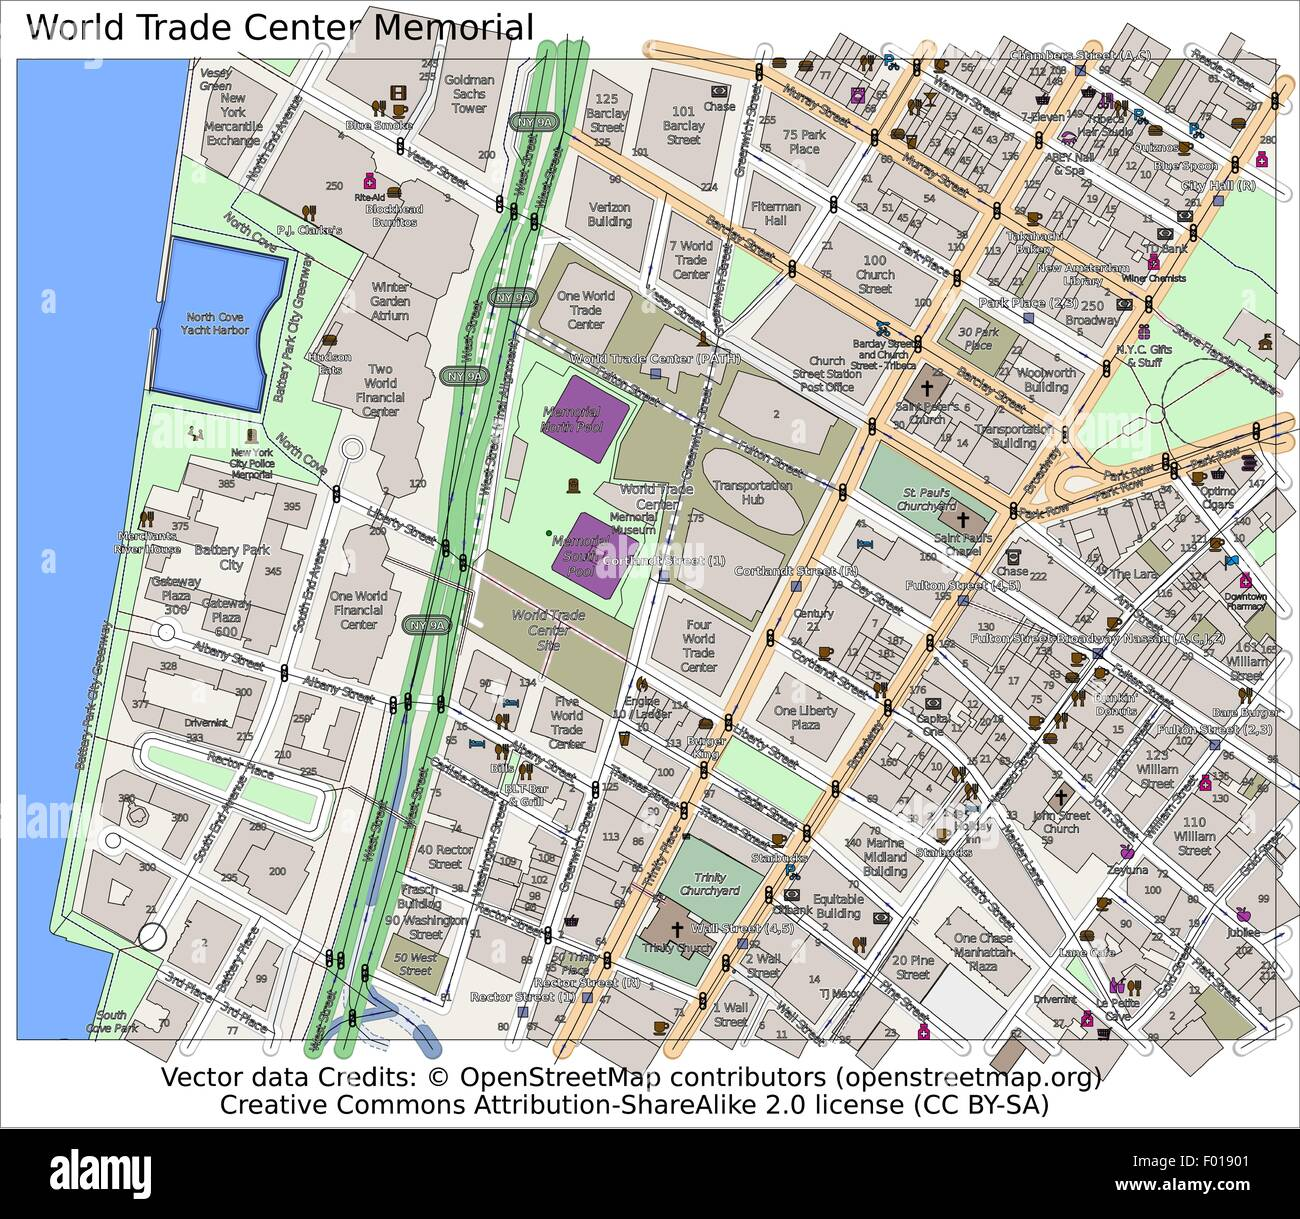 Map Of New York Sites.World Trade Center Memorial Site New York City Map Aerial View Stock